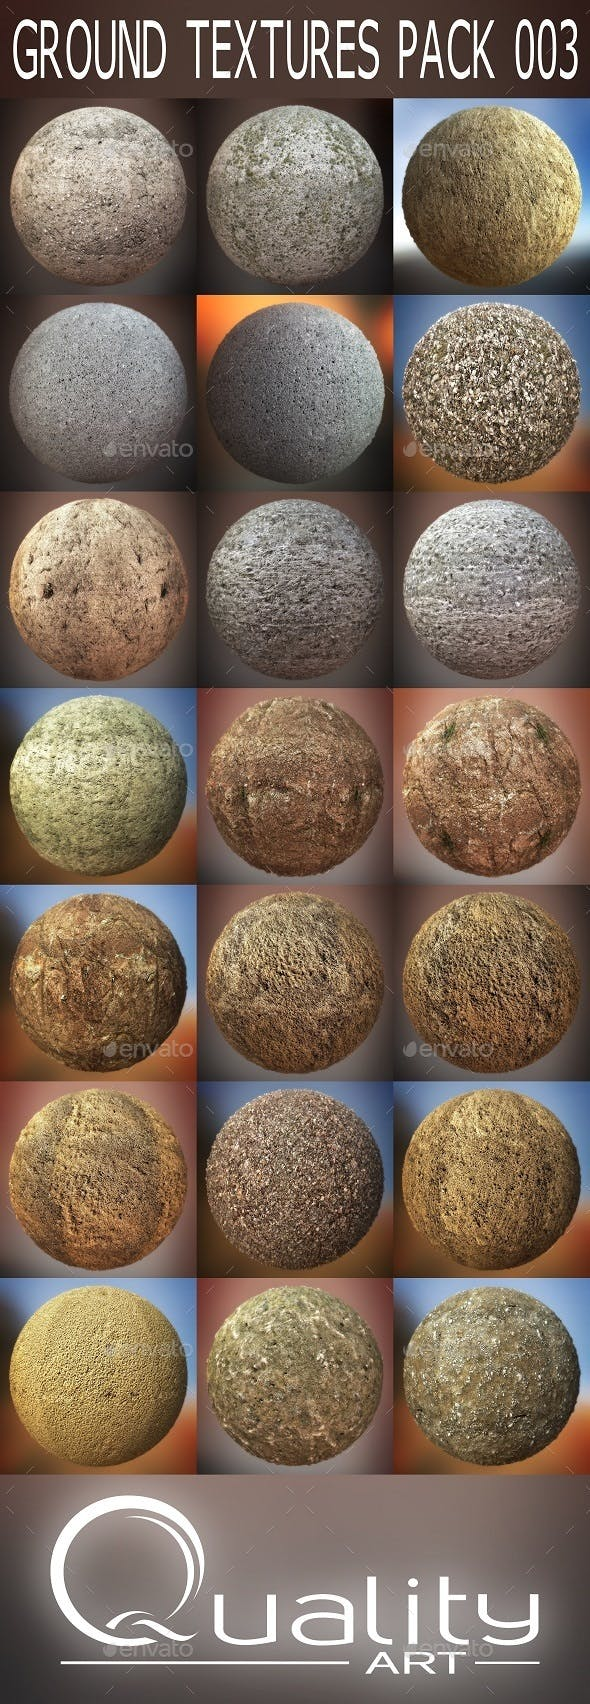 Ground Textures Pack 003 - 3DOcean Item for Sale